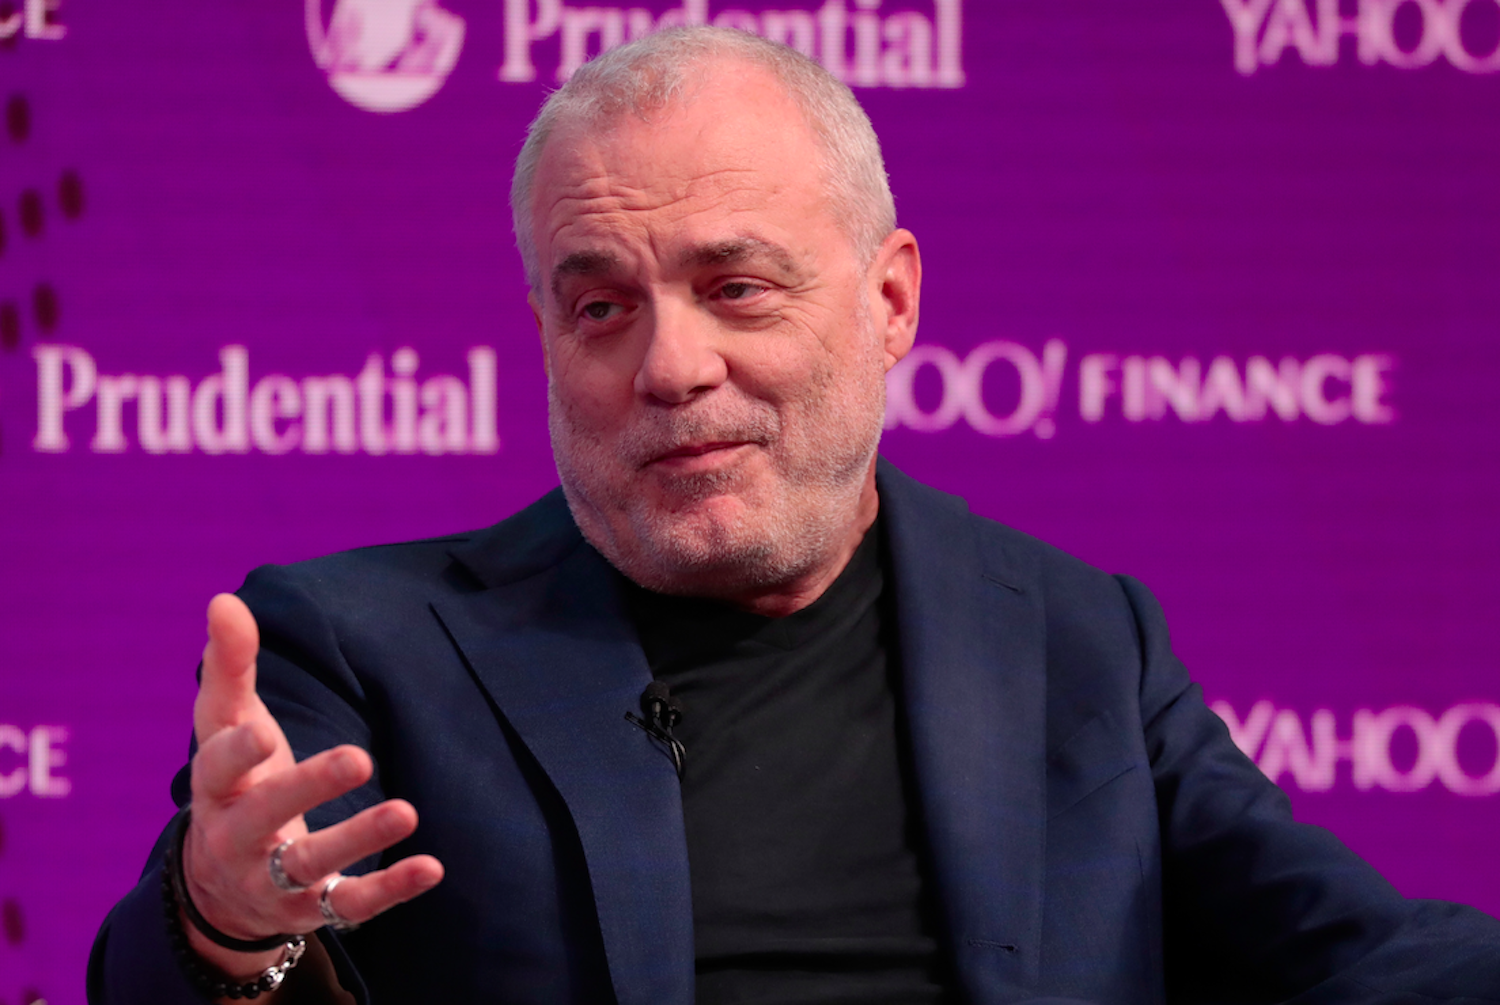 CVS-Aetna merger? Here's what the 'good friend' CEOs have said.